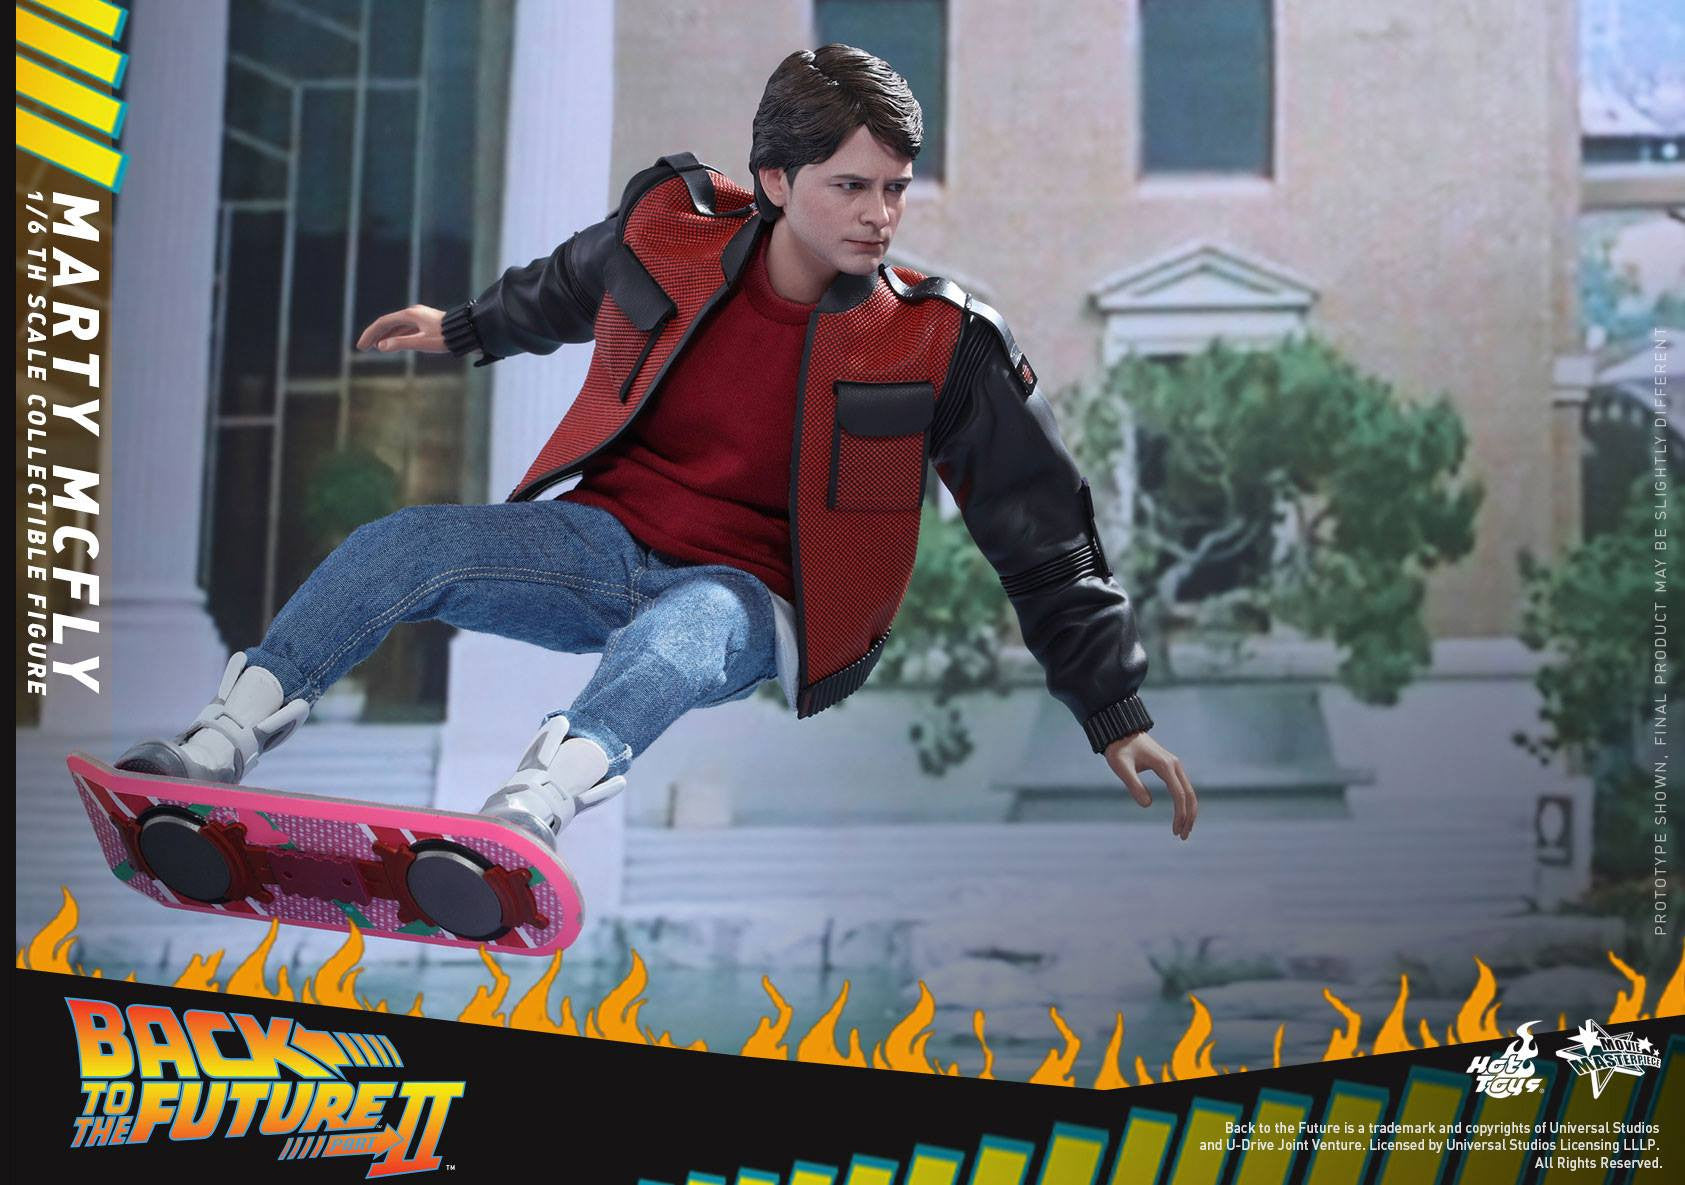 Hot Toys - MMS379 - Back to The Future Part II - Marty McFly (Normal Edition) - Marvelous Toys - 11